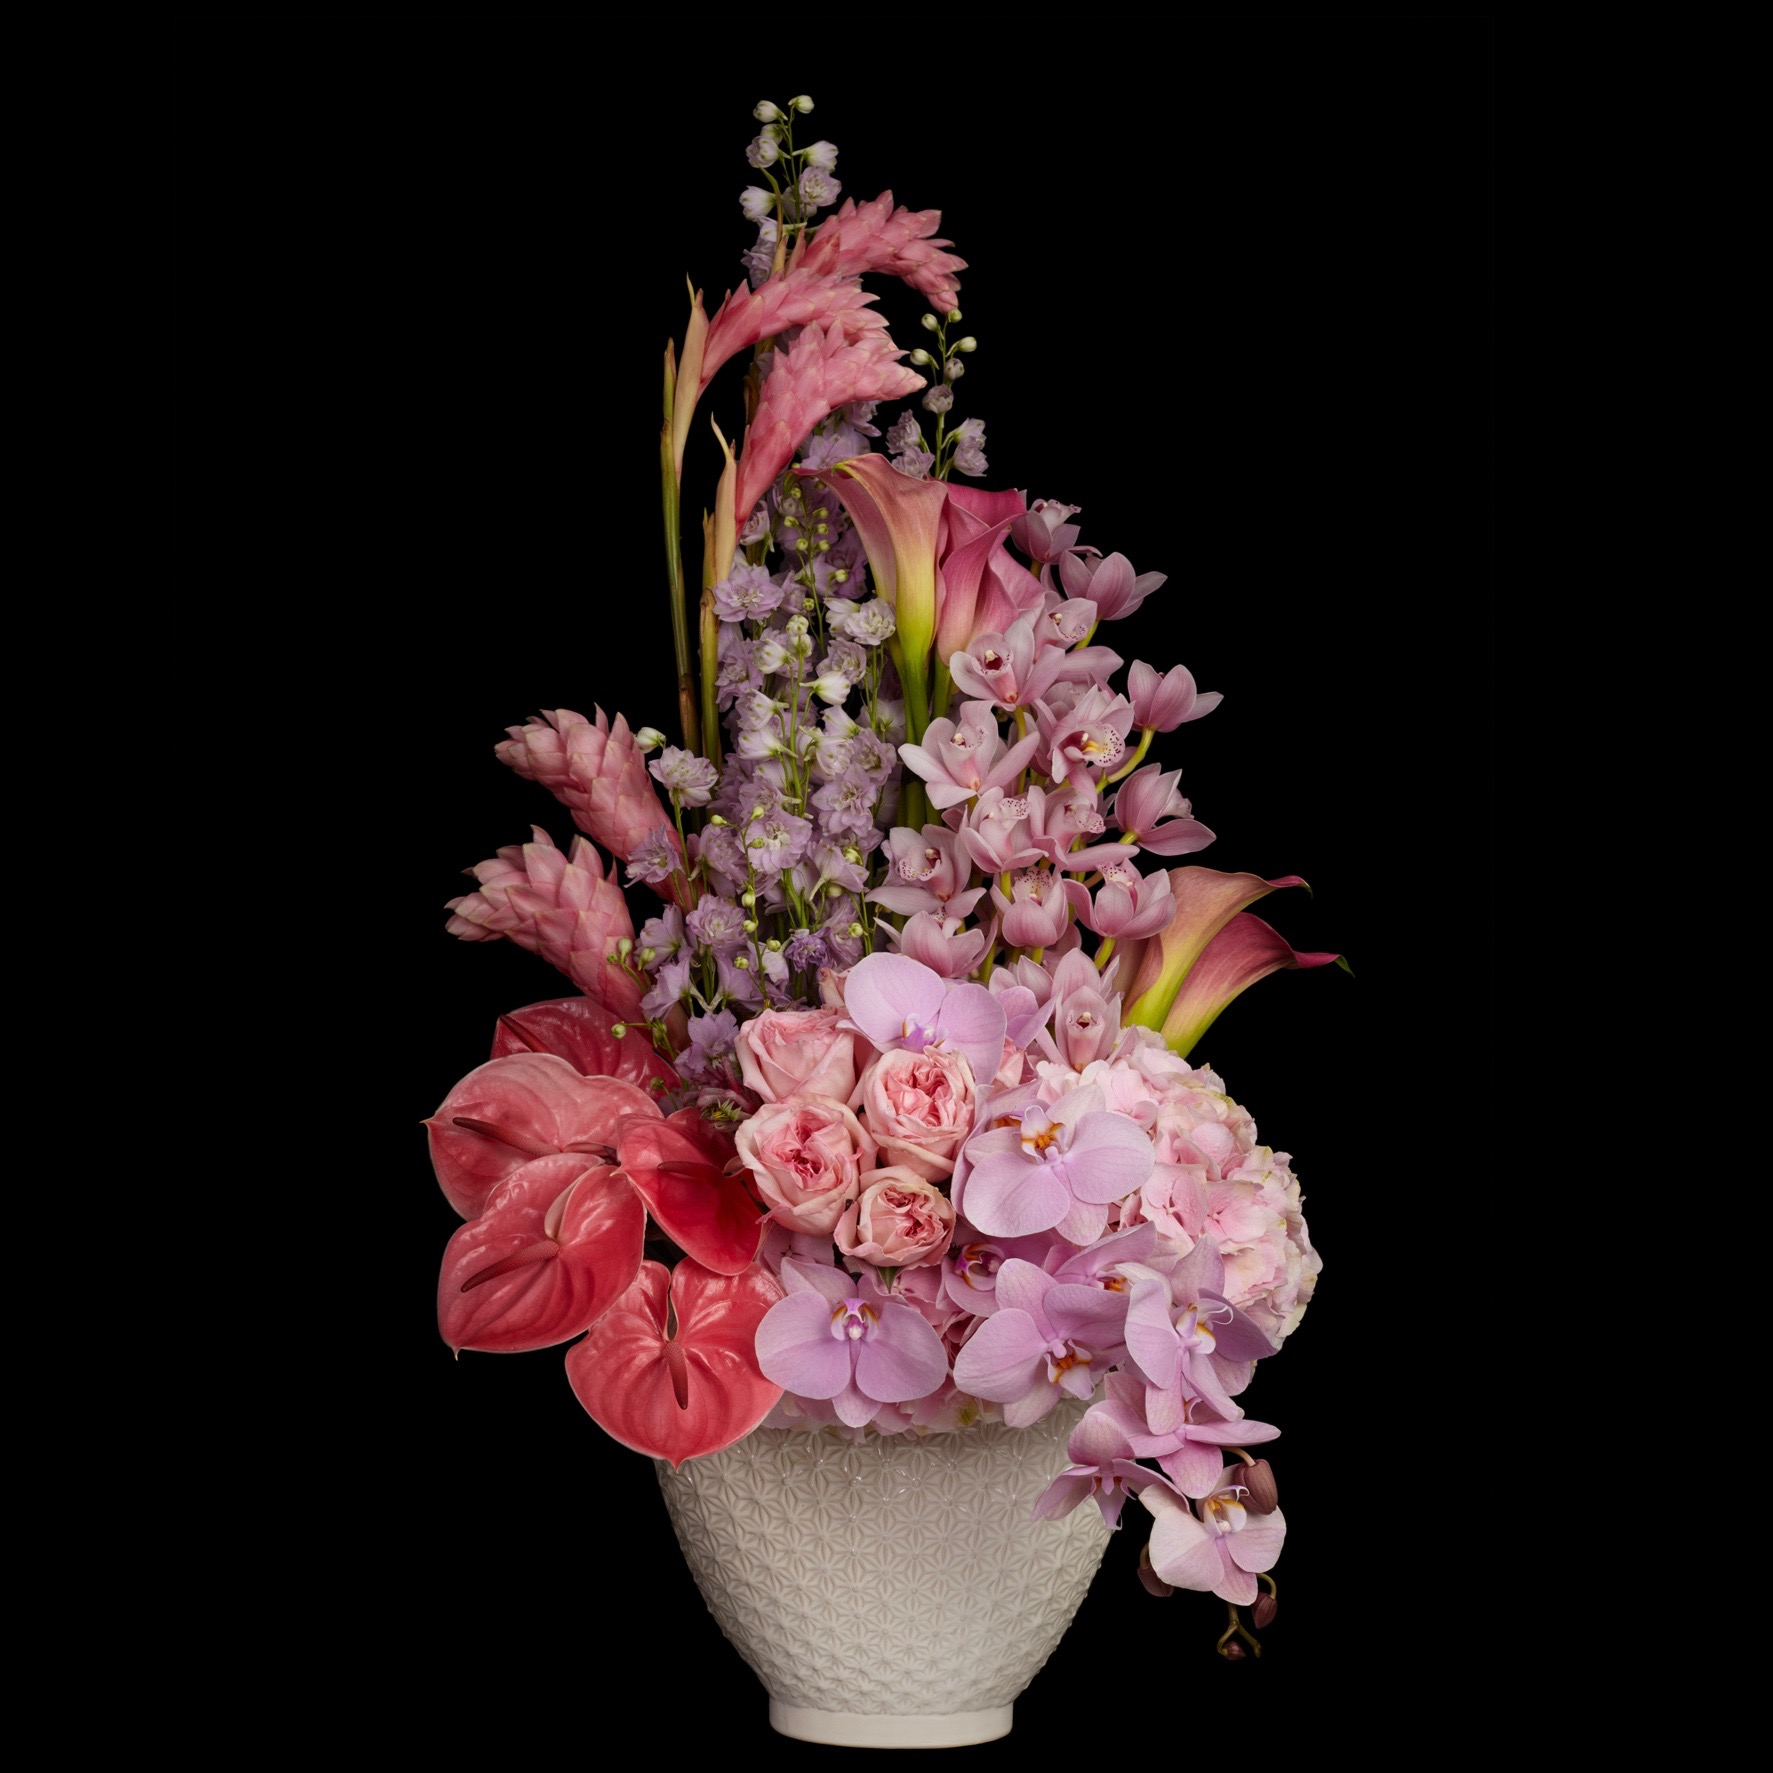 Sloane Tall Arrangement in pink by Neill Strain Floral Couture